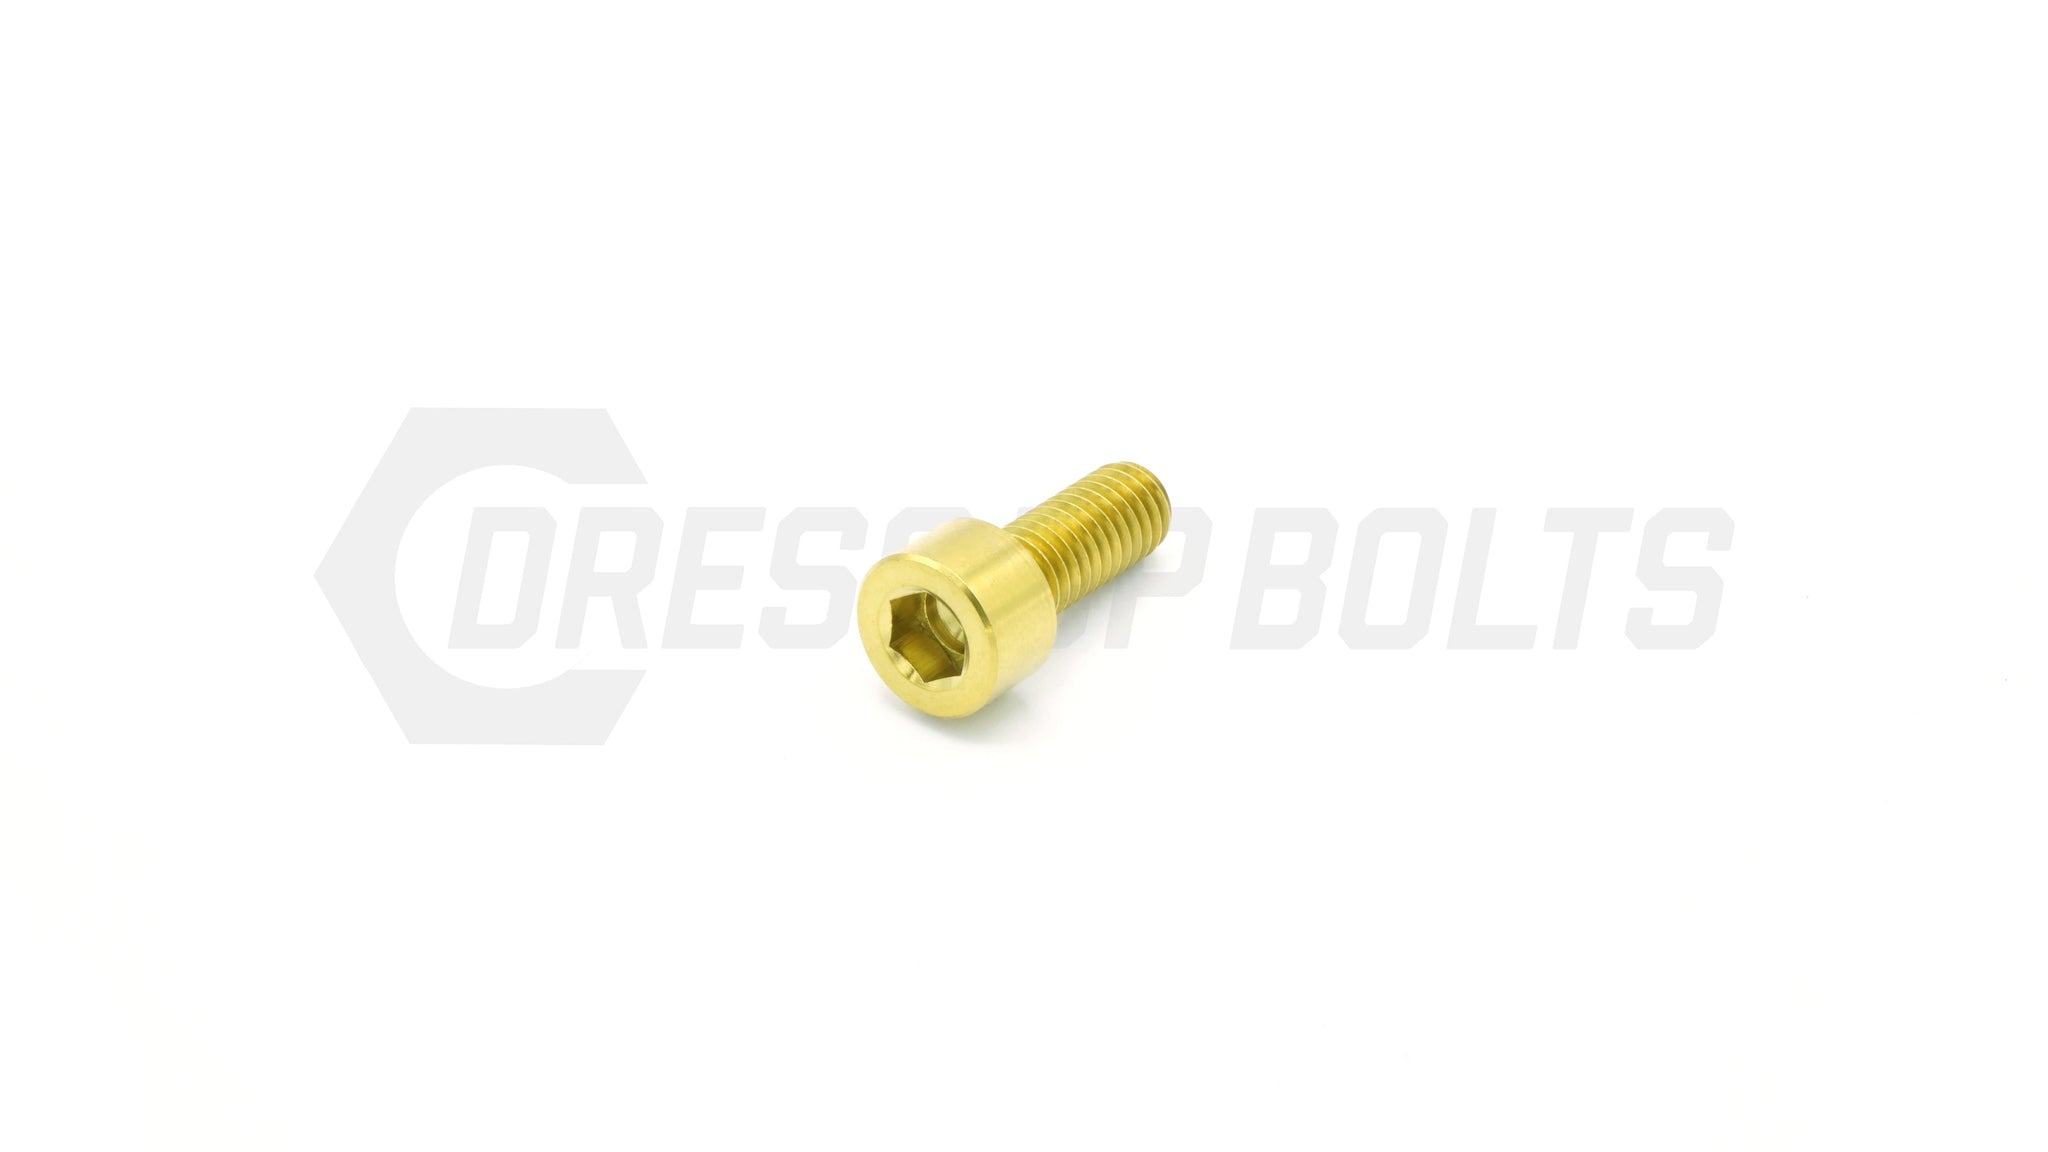 M6 x 1.00 x 15mm Titanium Socket Head Bolt by Dress Up Bolts - DressUpBolts.com